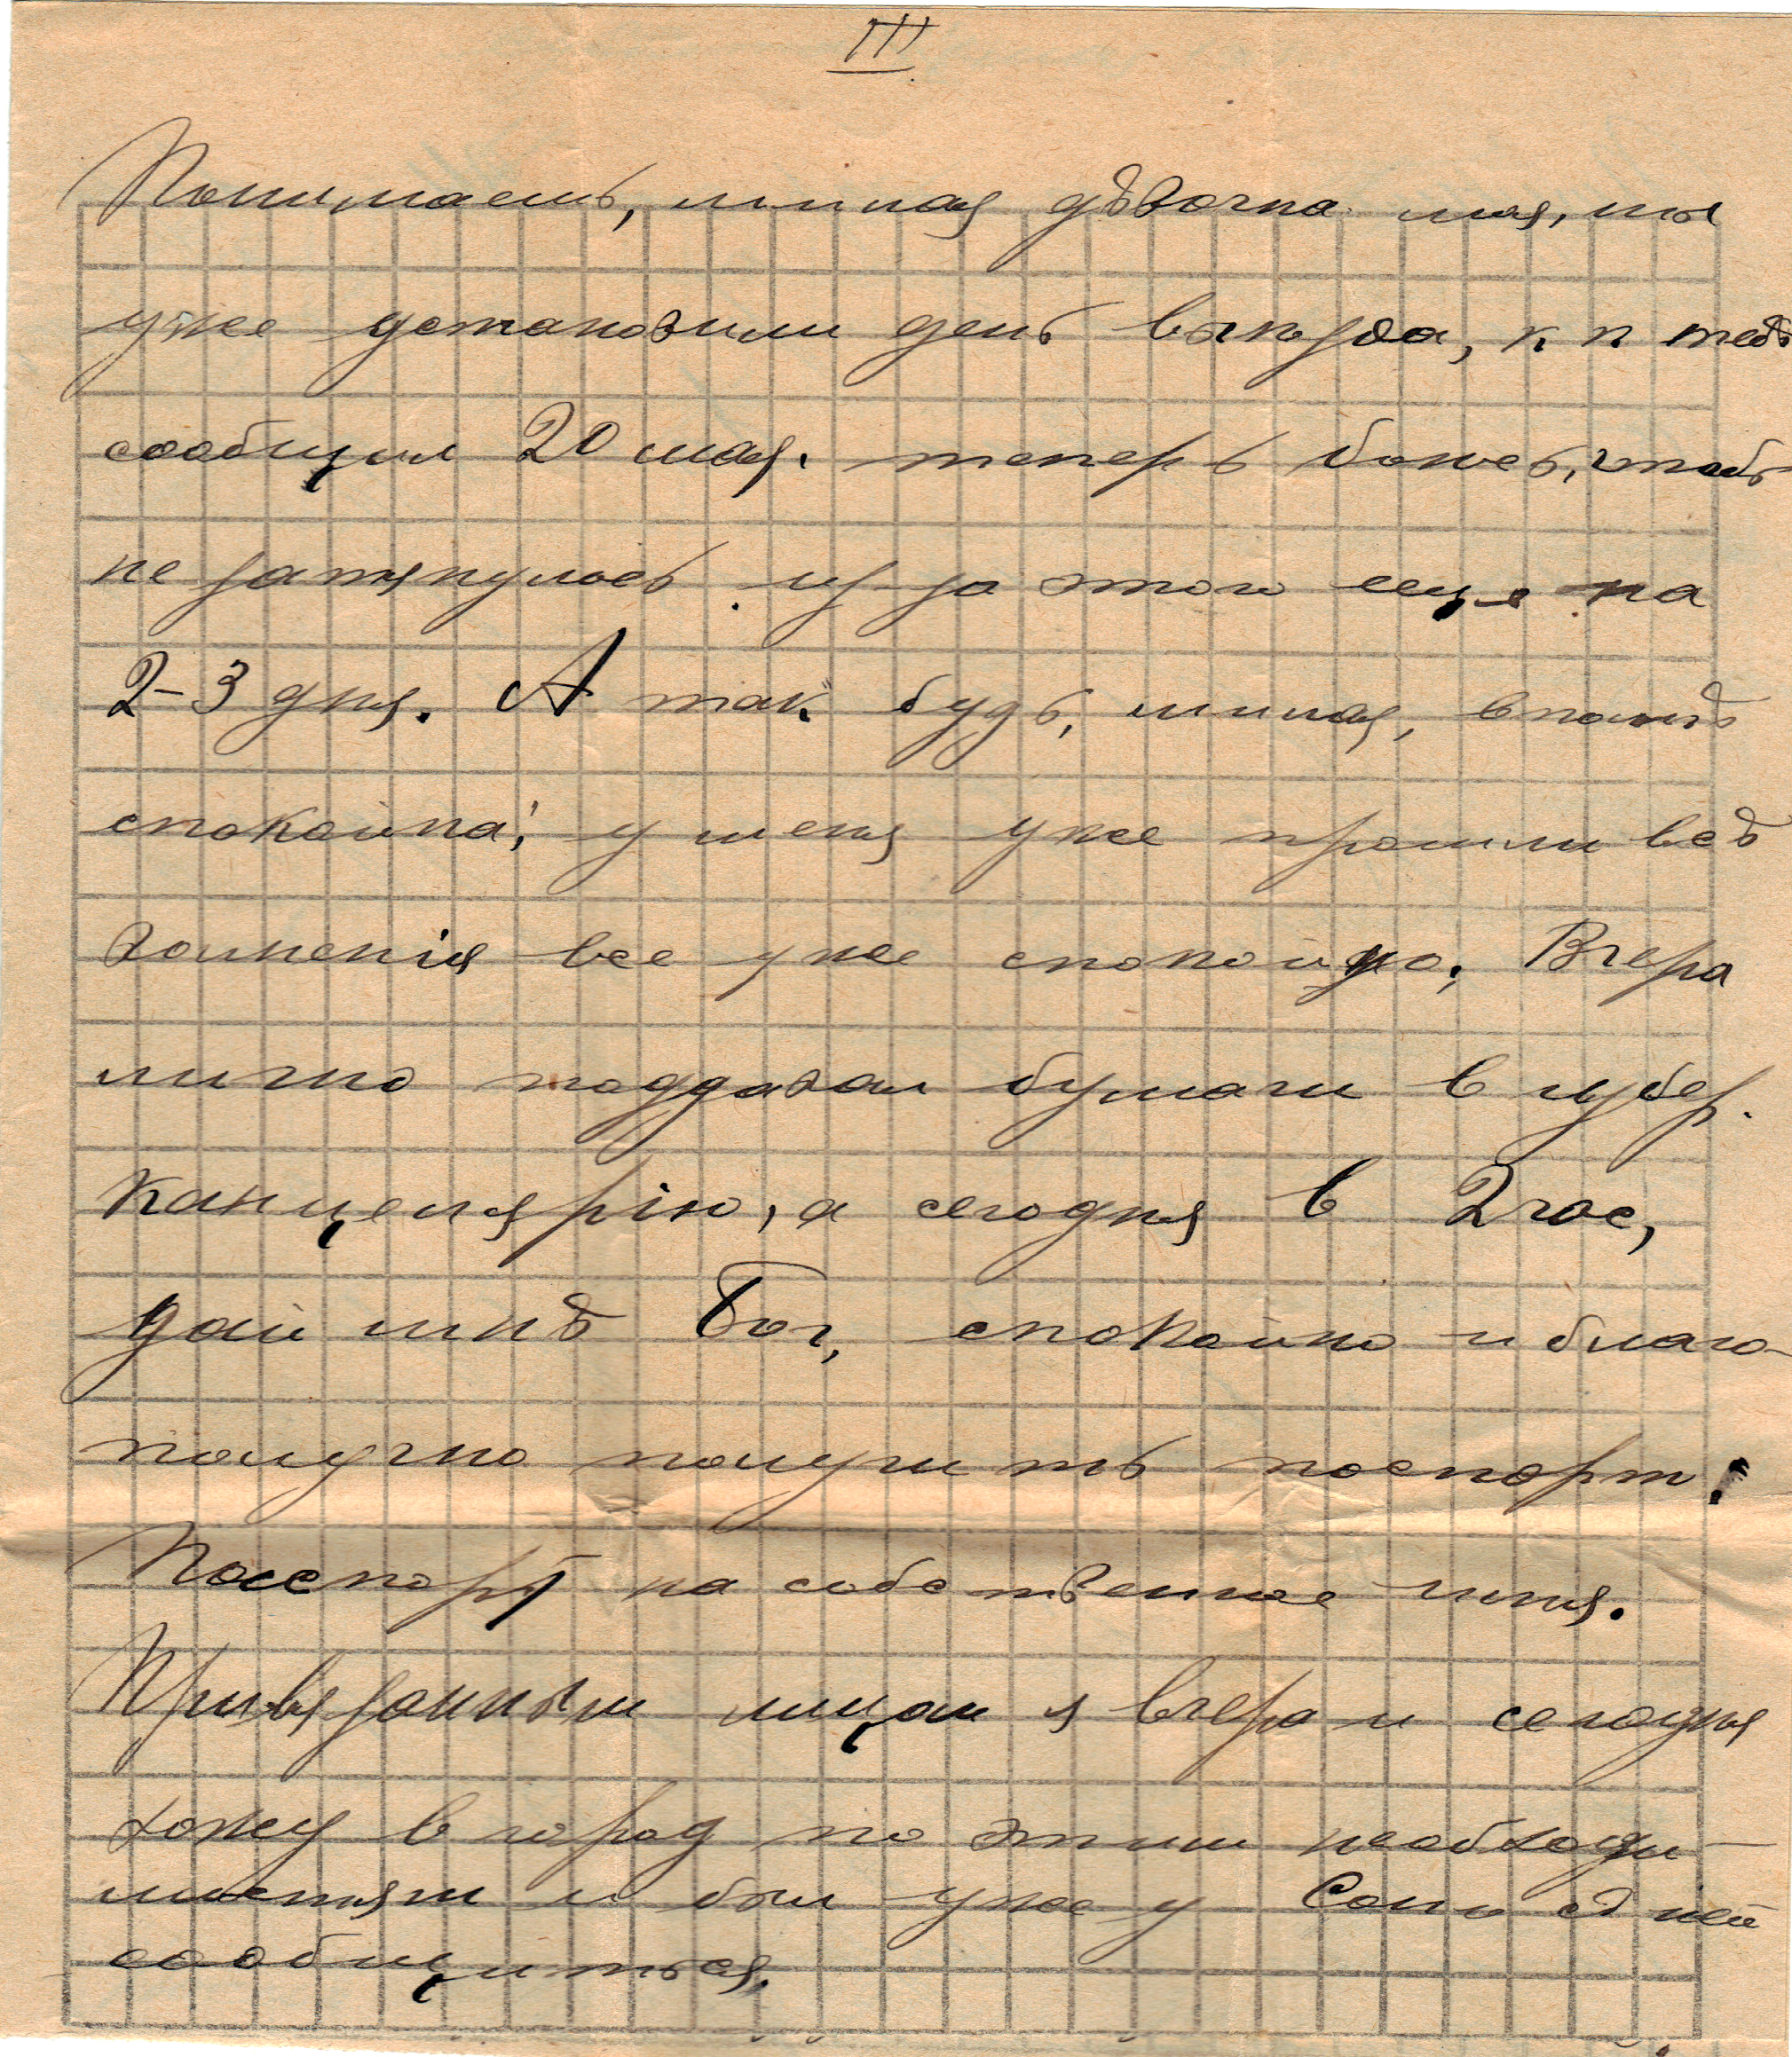 Letter to Poline from Aron May 17, 1914 p03